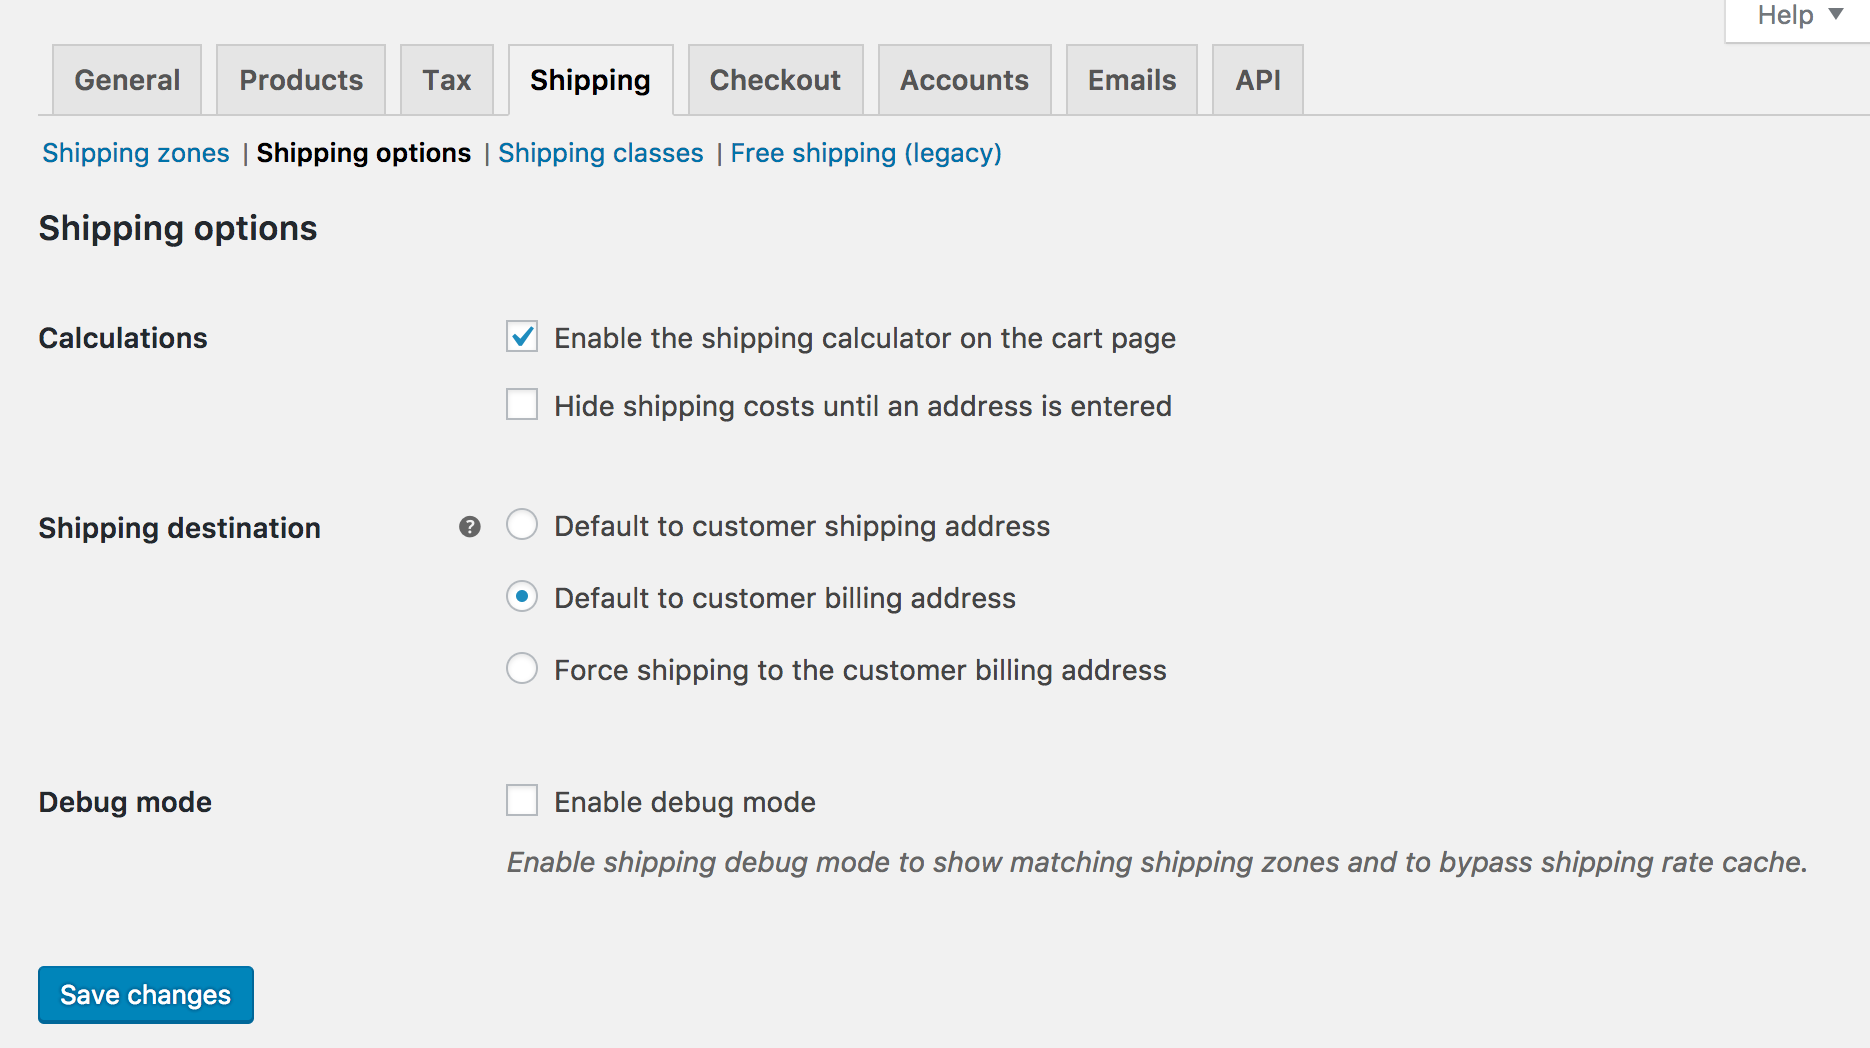 Shop customer account login/downloader - Shipping Options Back To Top